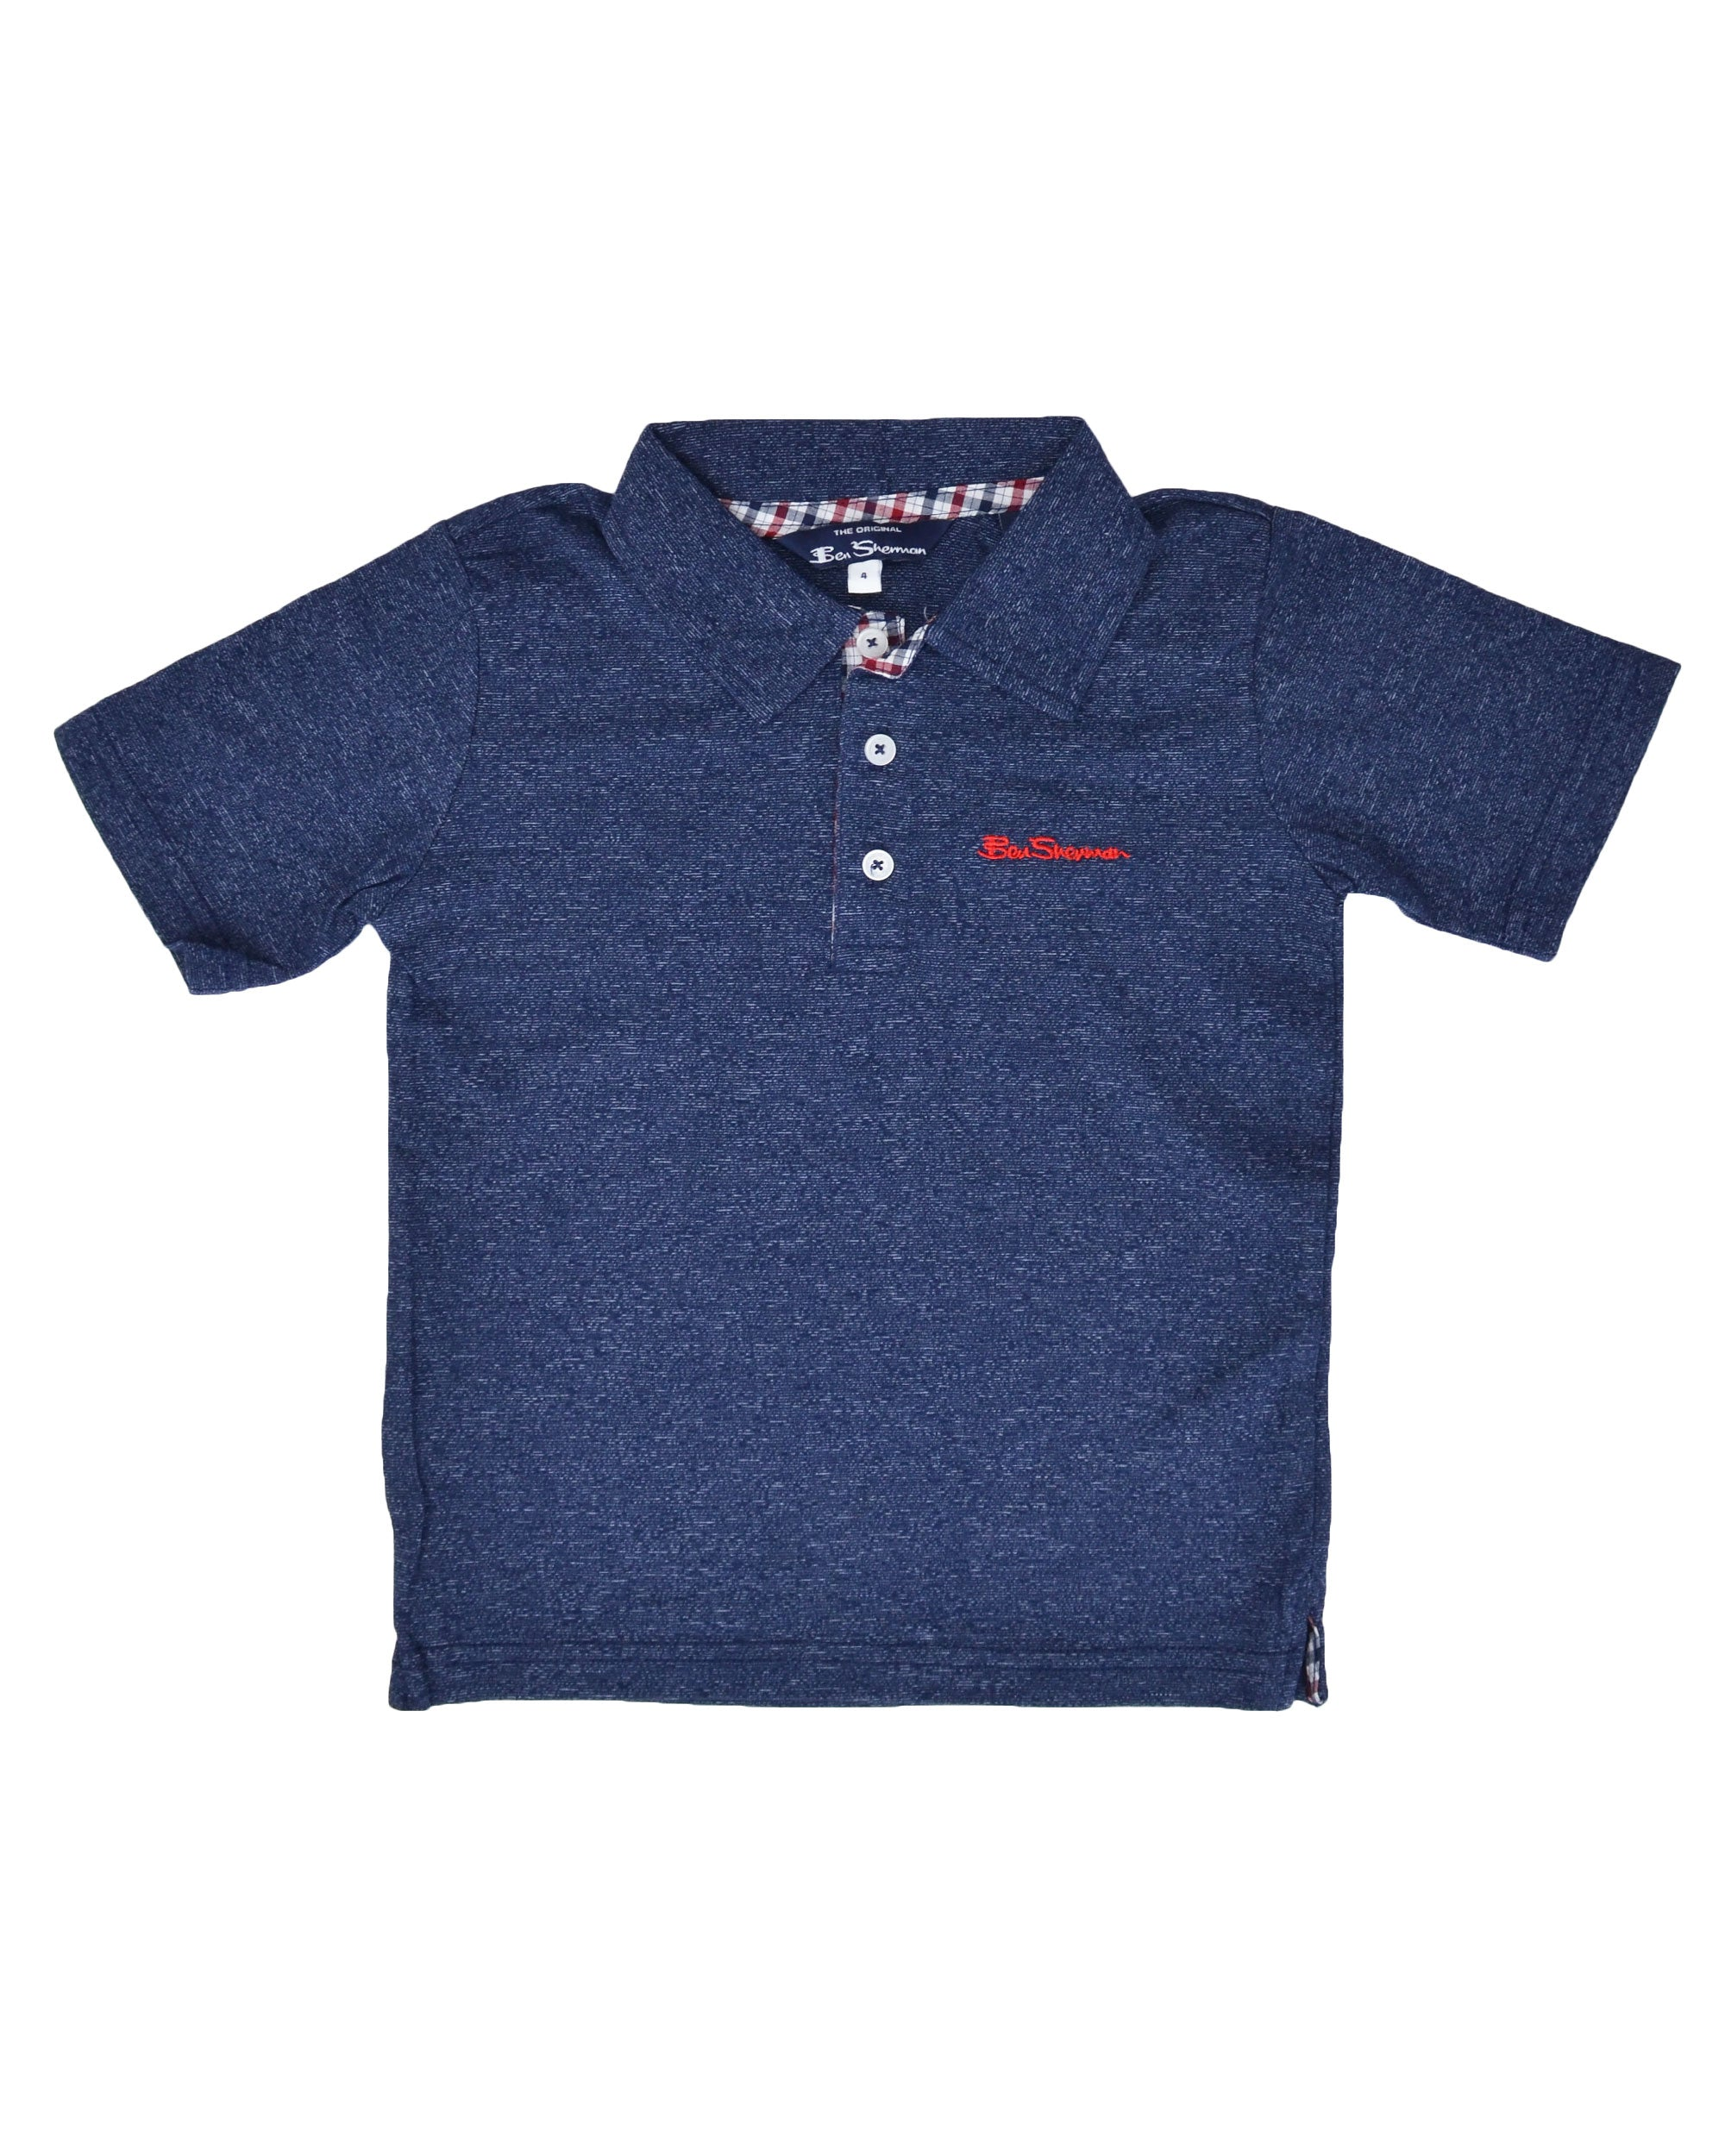 1dd068420 Boys  Short-Sleeve Polo Shirt - Navy (Sizes 4-7) – Ben Sherman